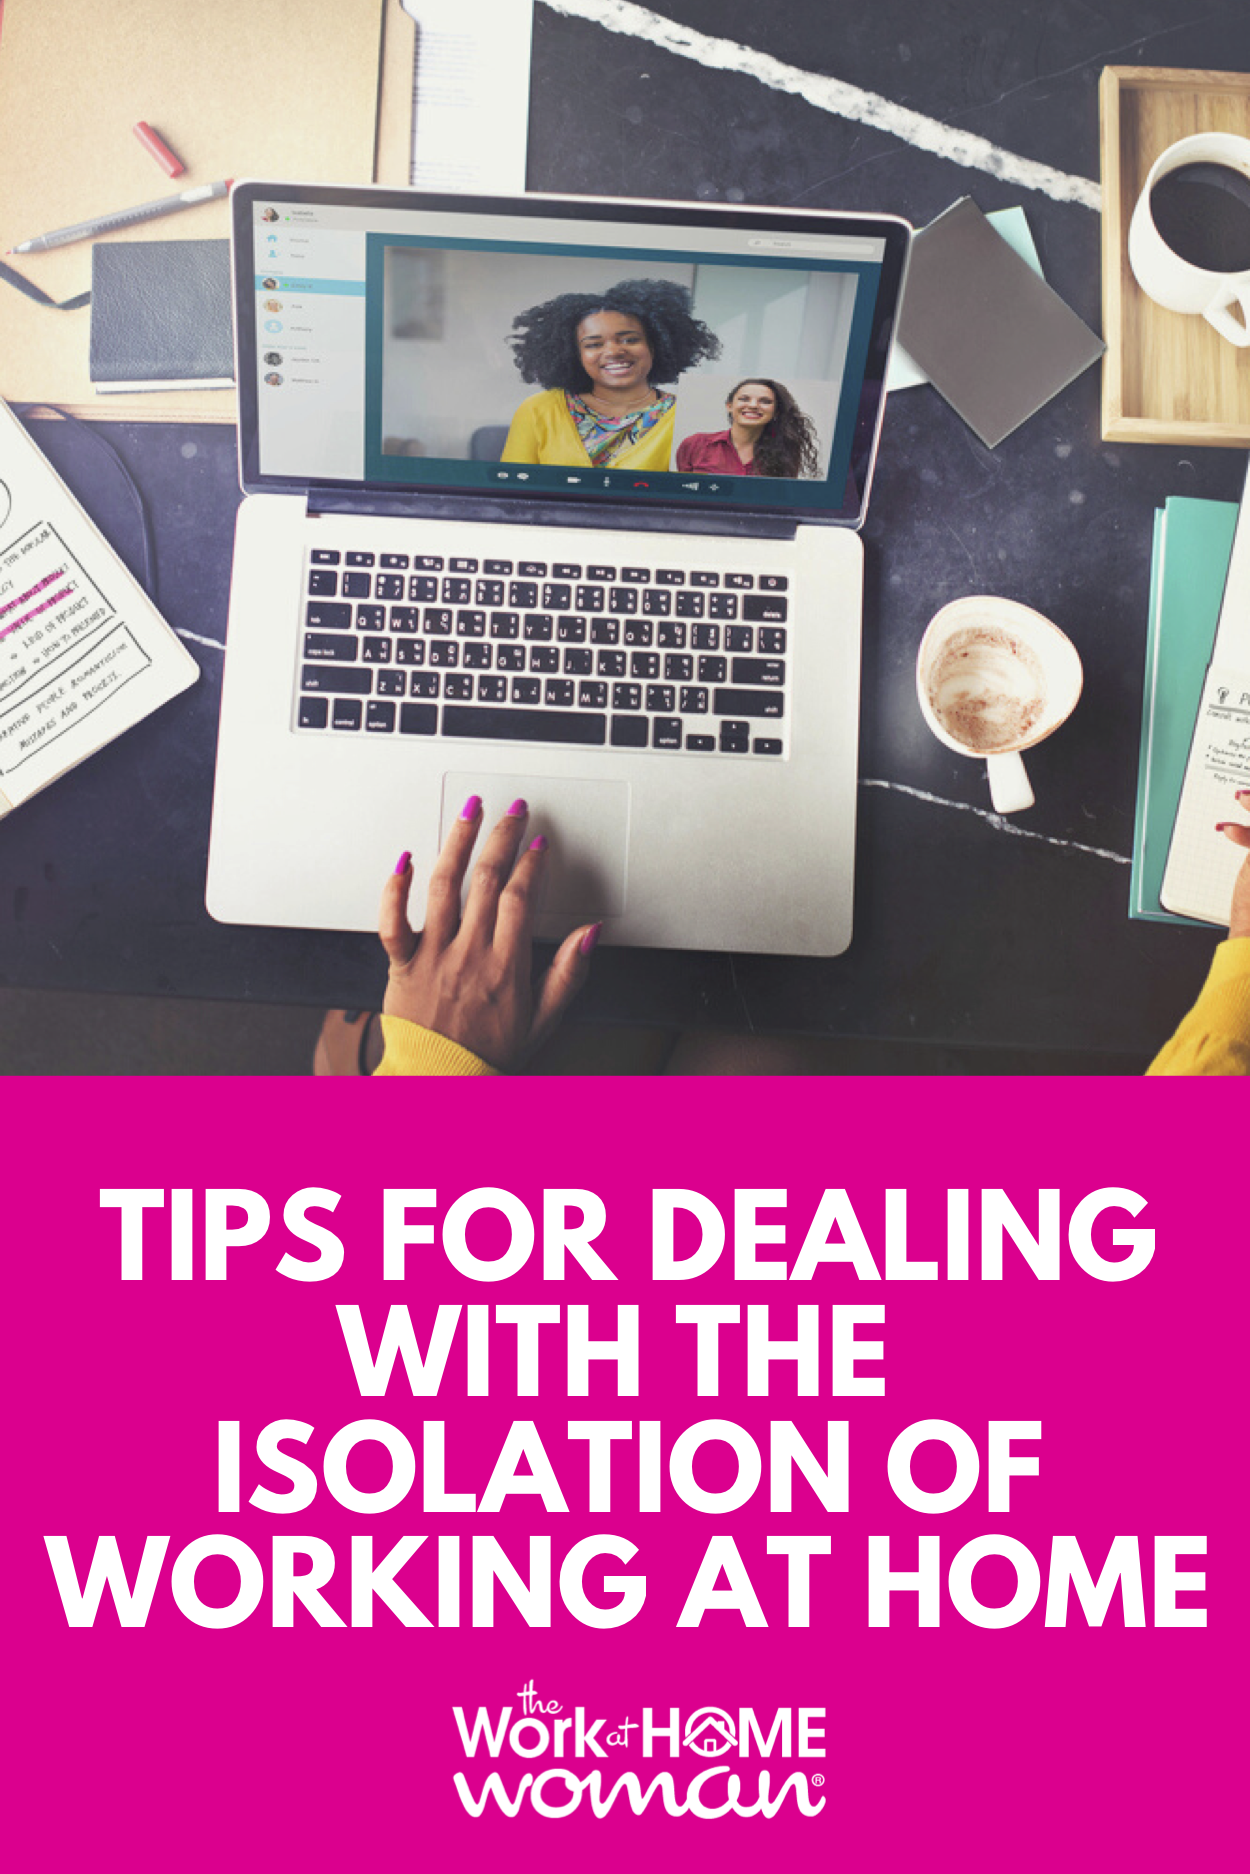 10 Easy Tips for Dealing With the Isolation of Working